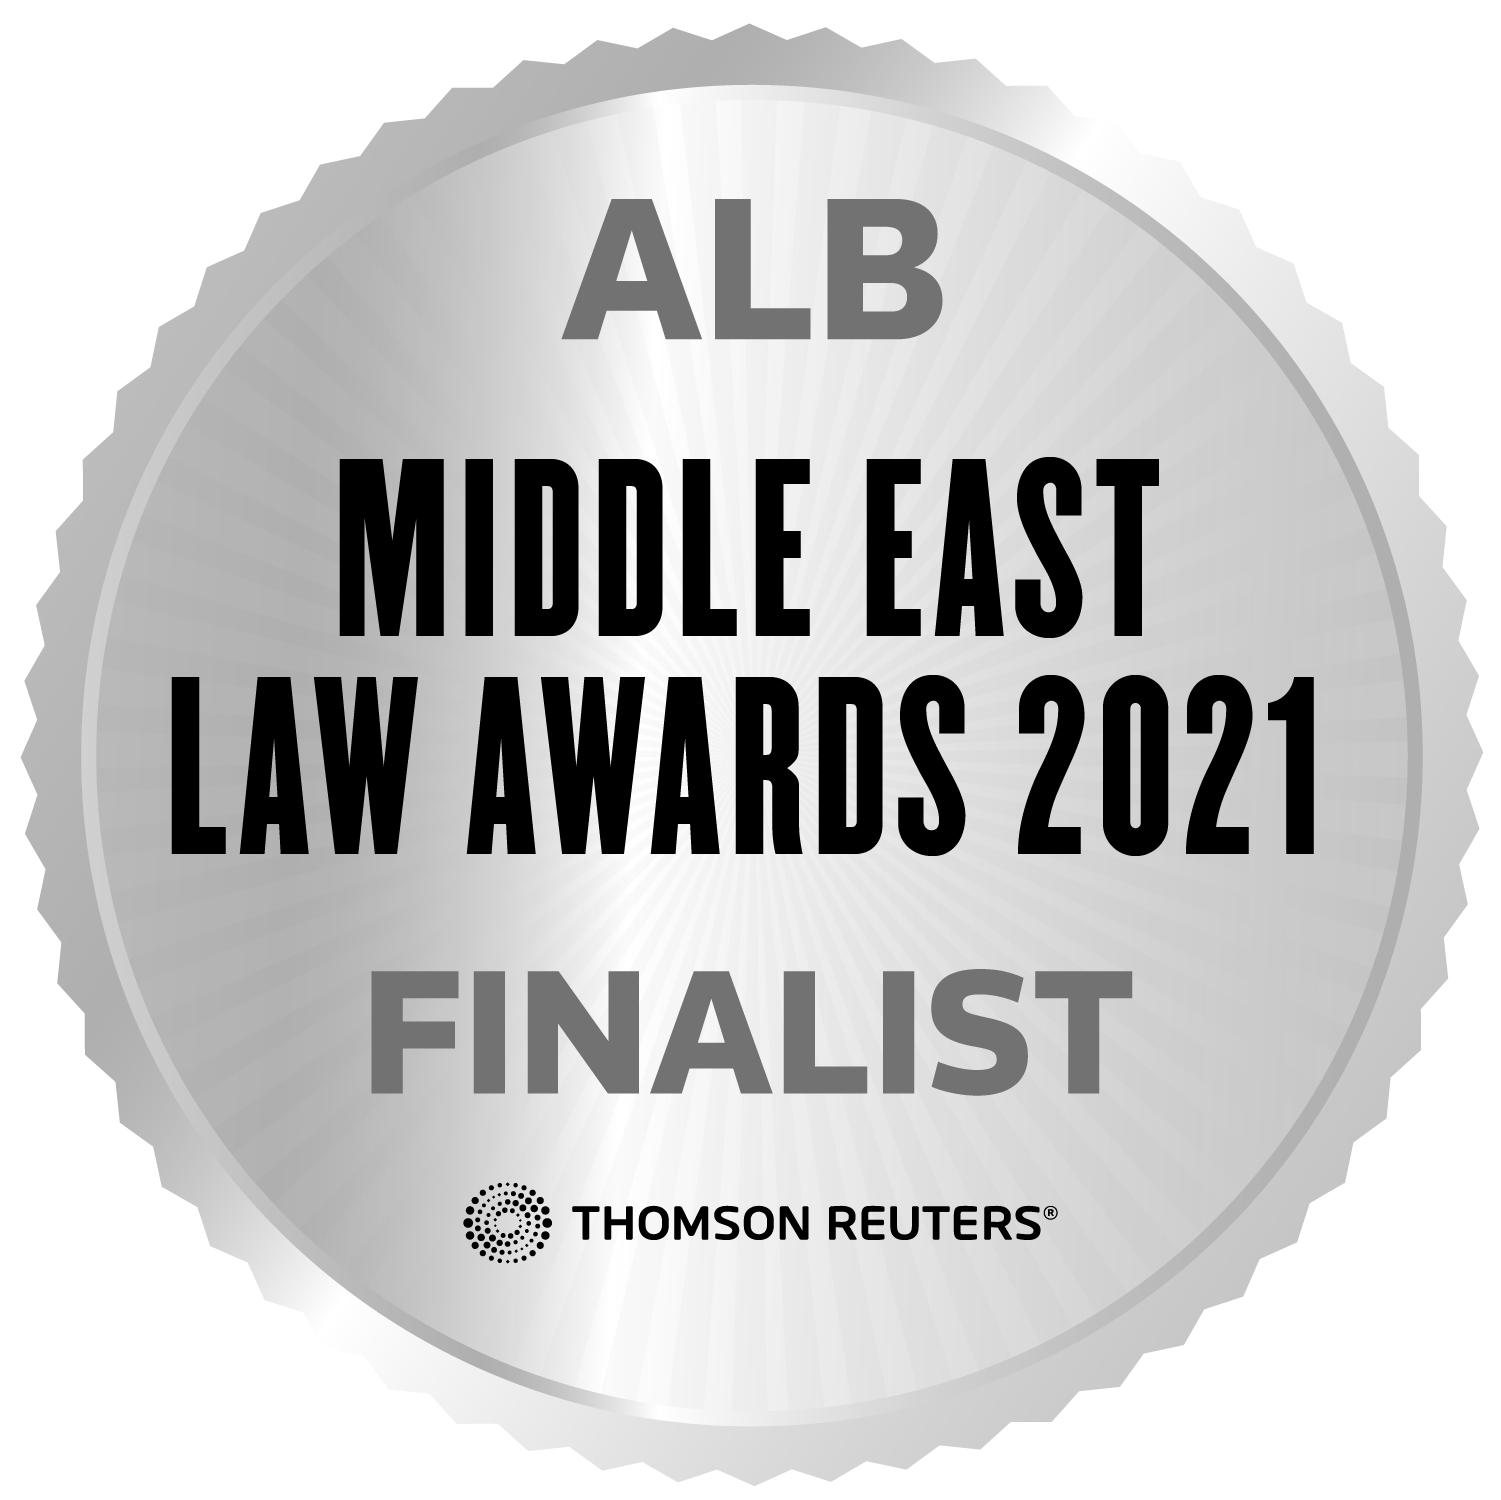 ALB Middle East Law Awards Arbitration